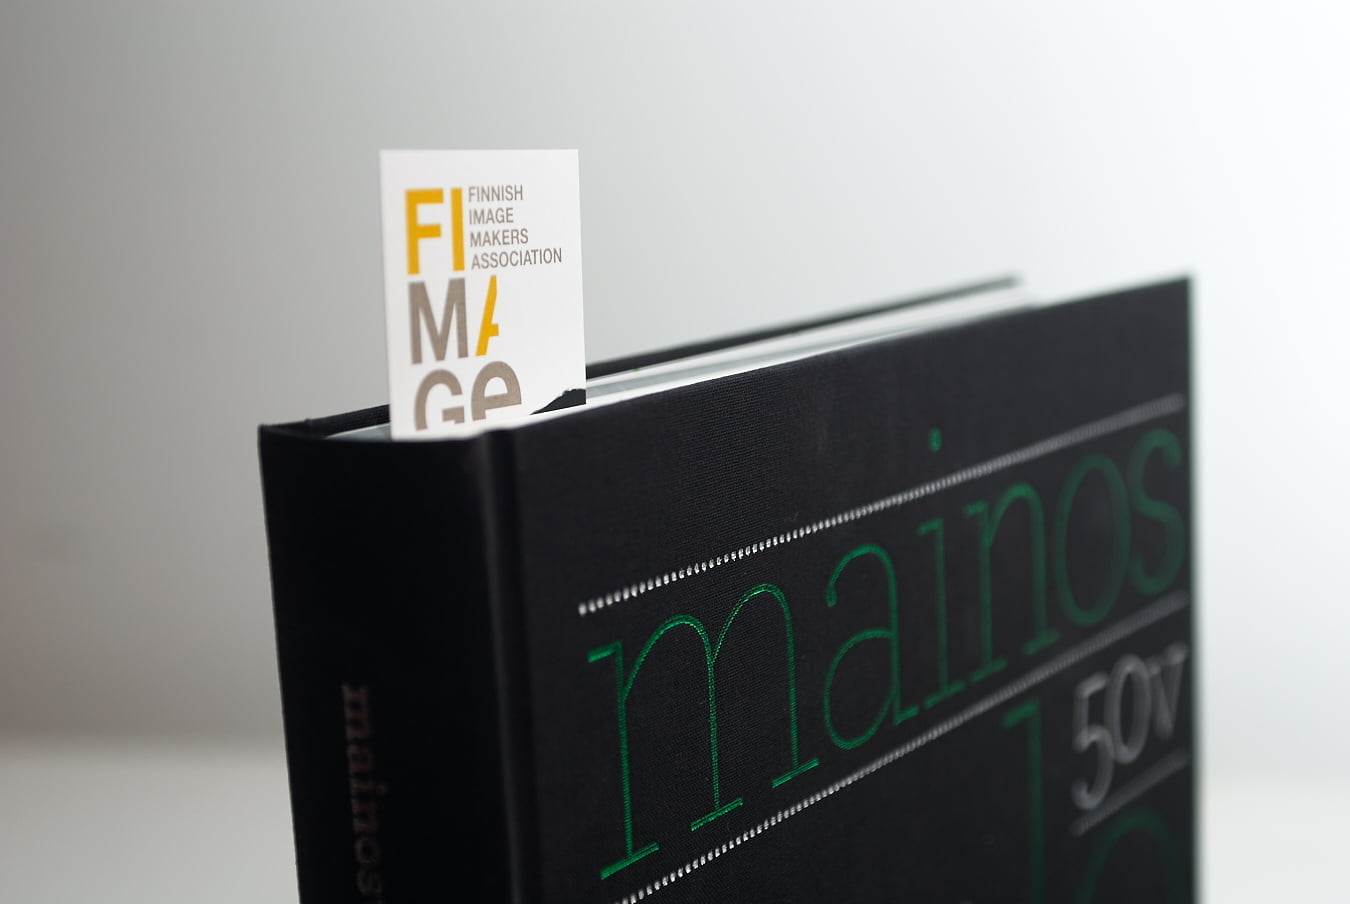 fimage bookmark